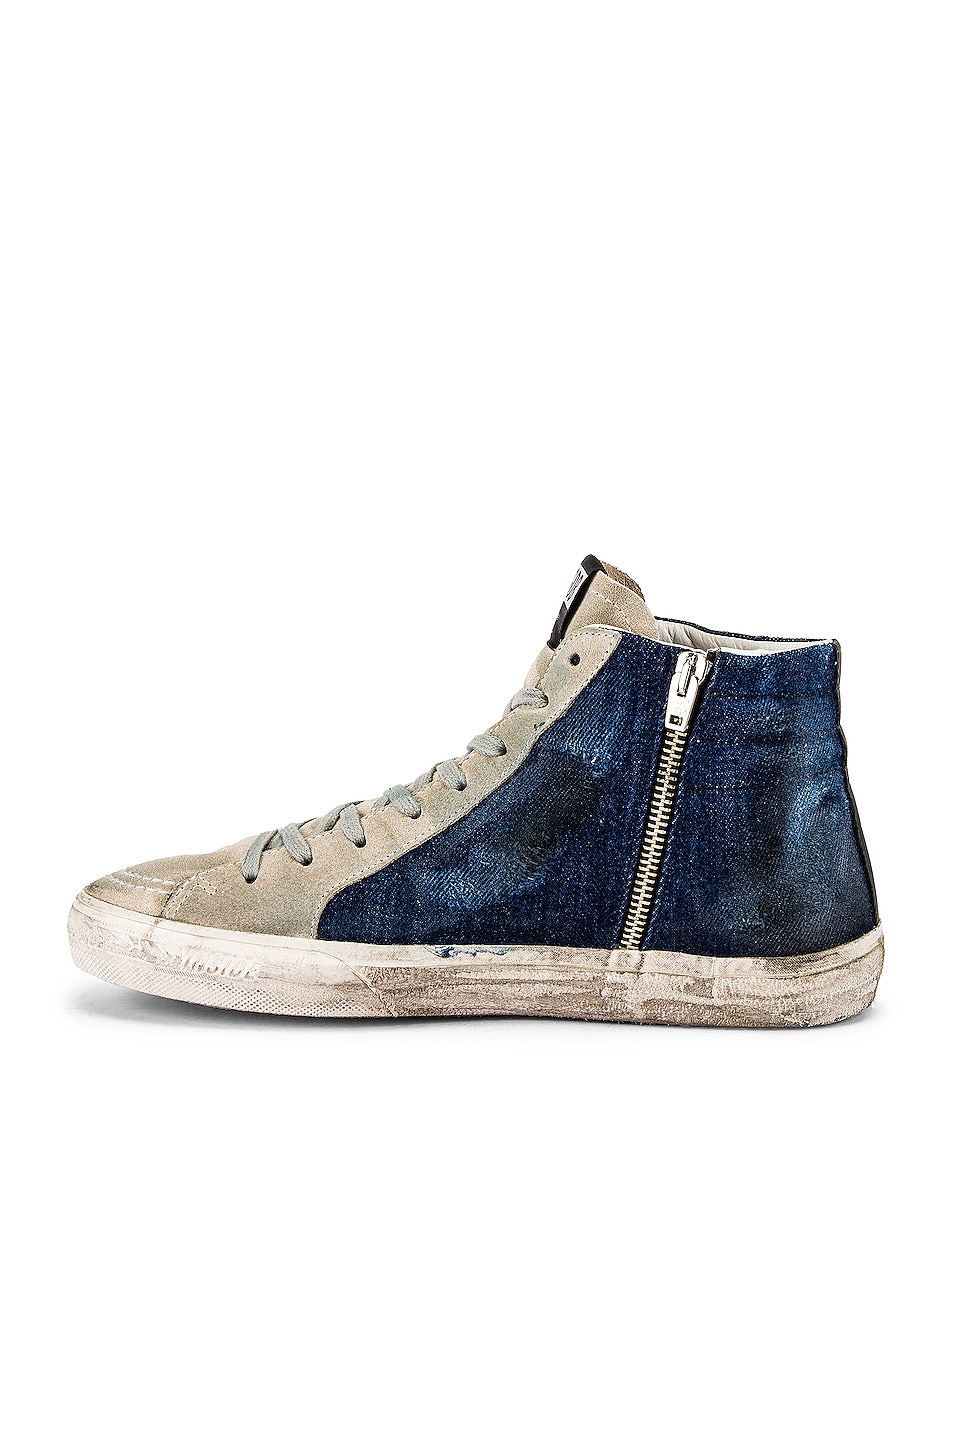 Image 5 of Golden Goose Slide Sneaker in Blue Denim & White Star